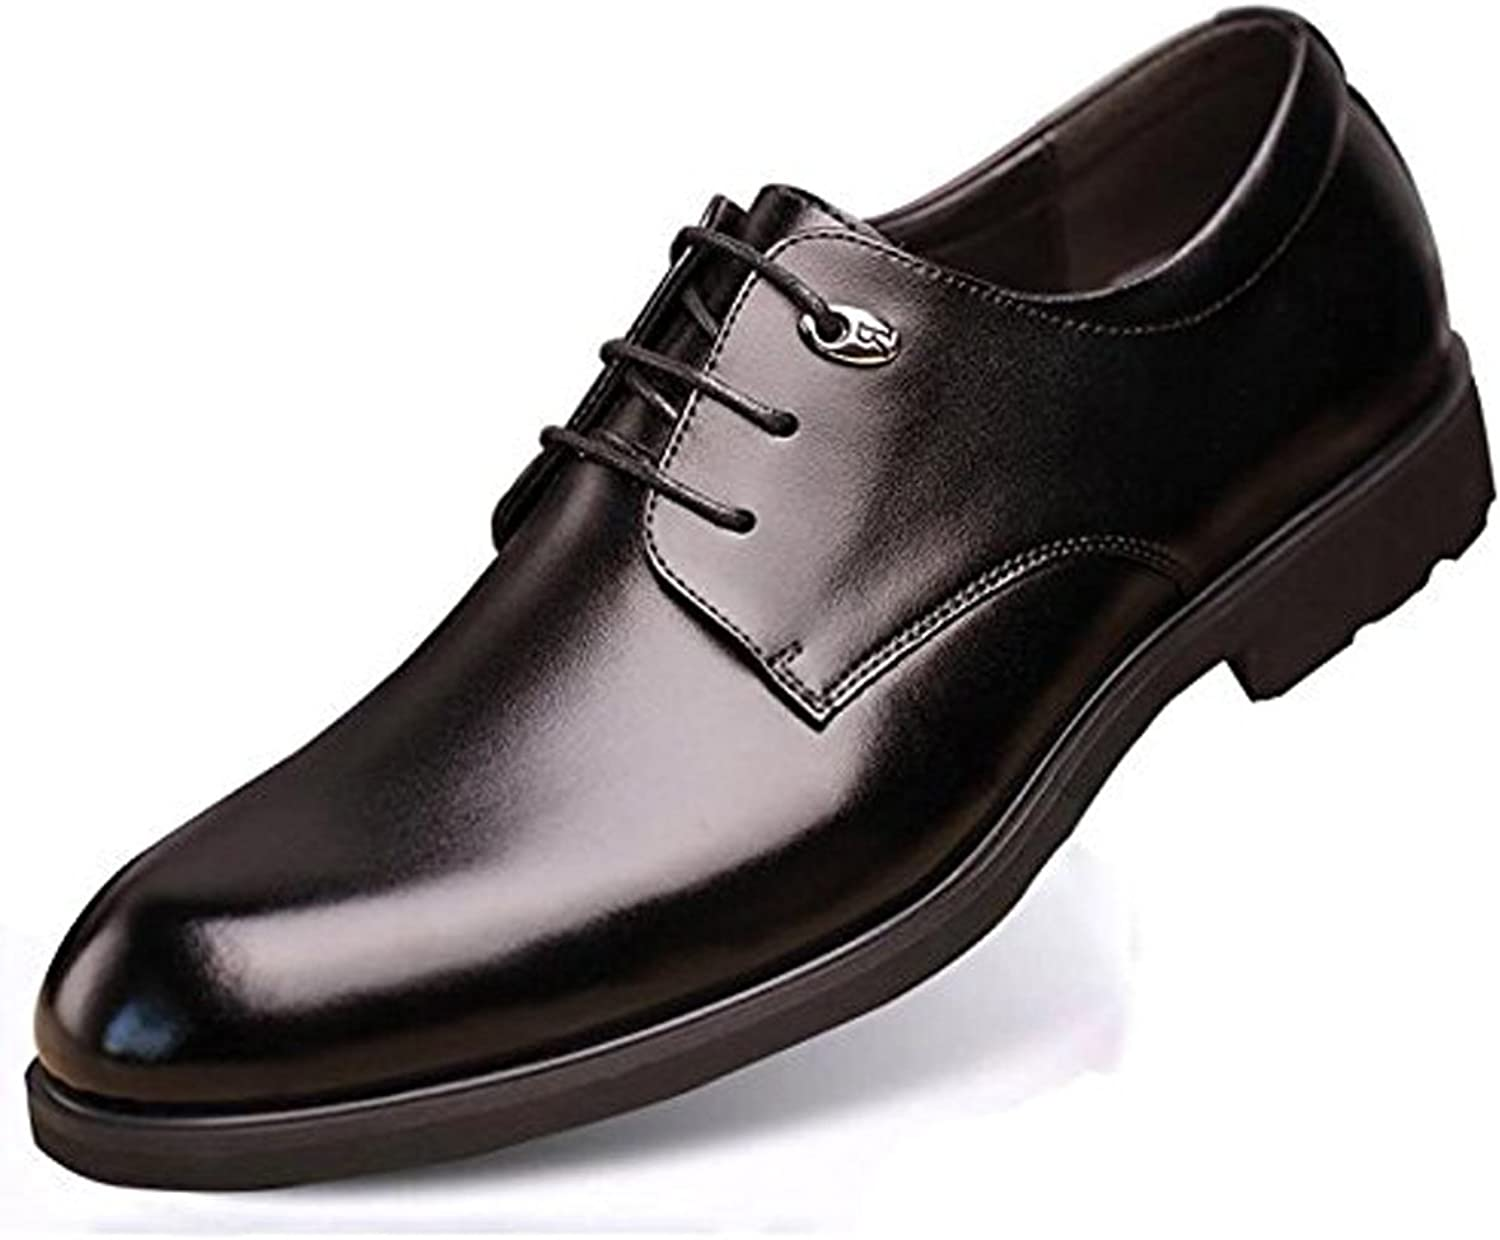 Summer Men's Leather shoes Business British Casual Breathable Dress Round Head shoes